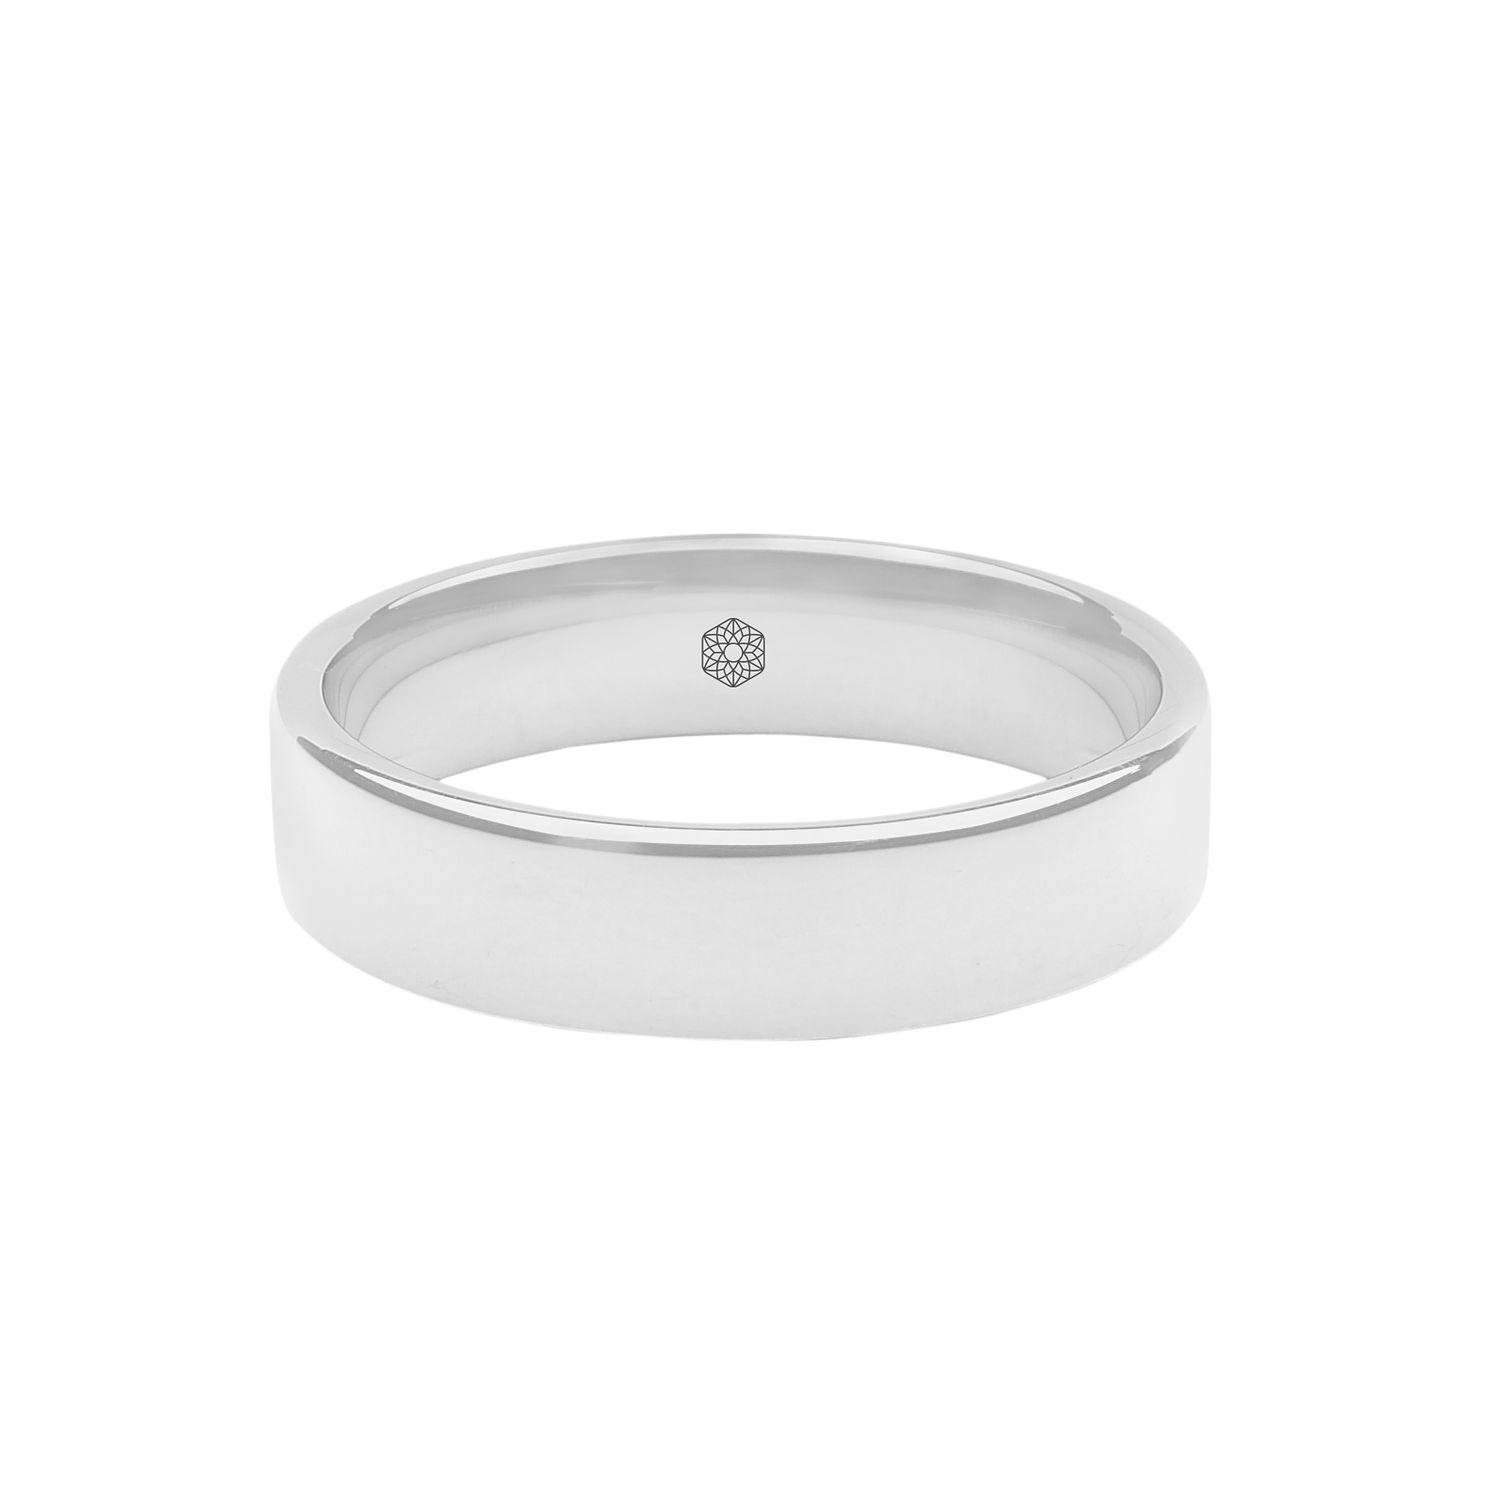 Baird Mint 18ct White Gold Arctic 5mm Flat Ring - Product number 8181705